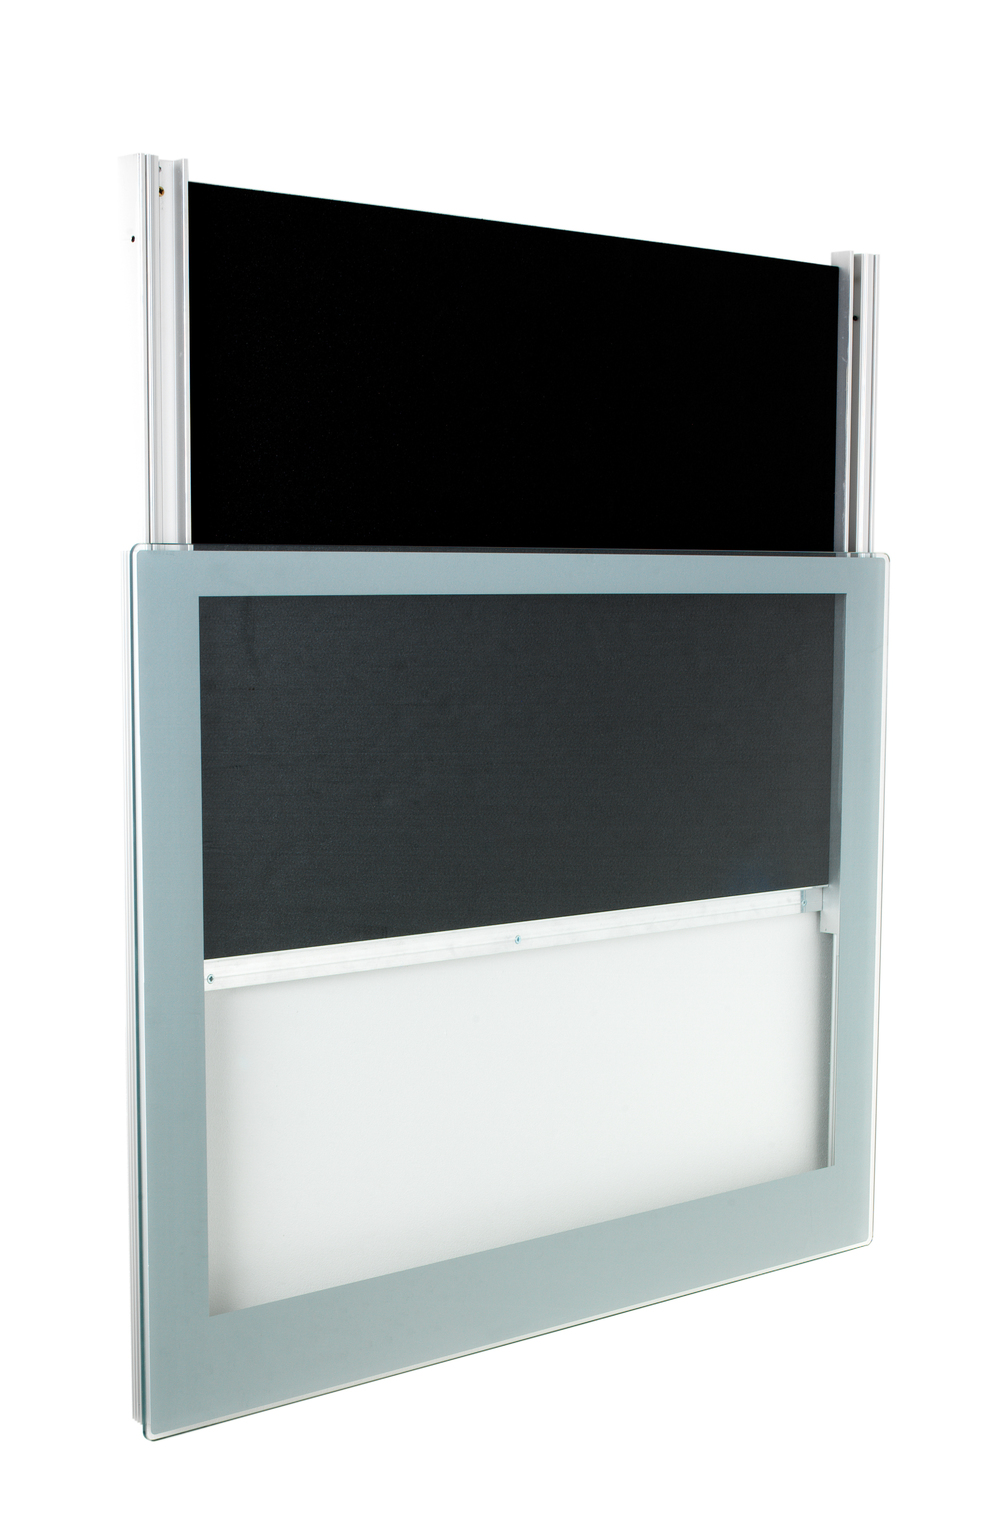 frameless display case mount